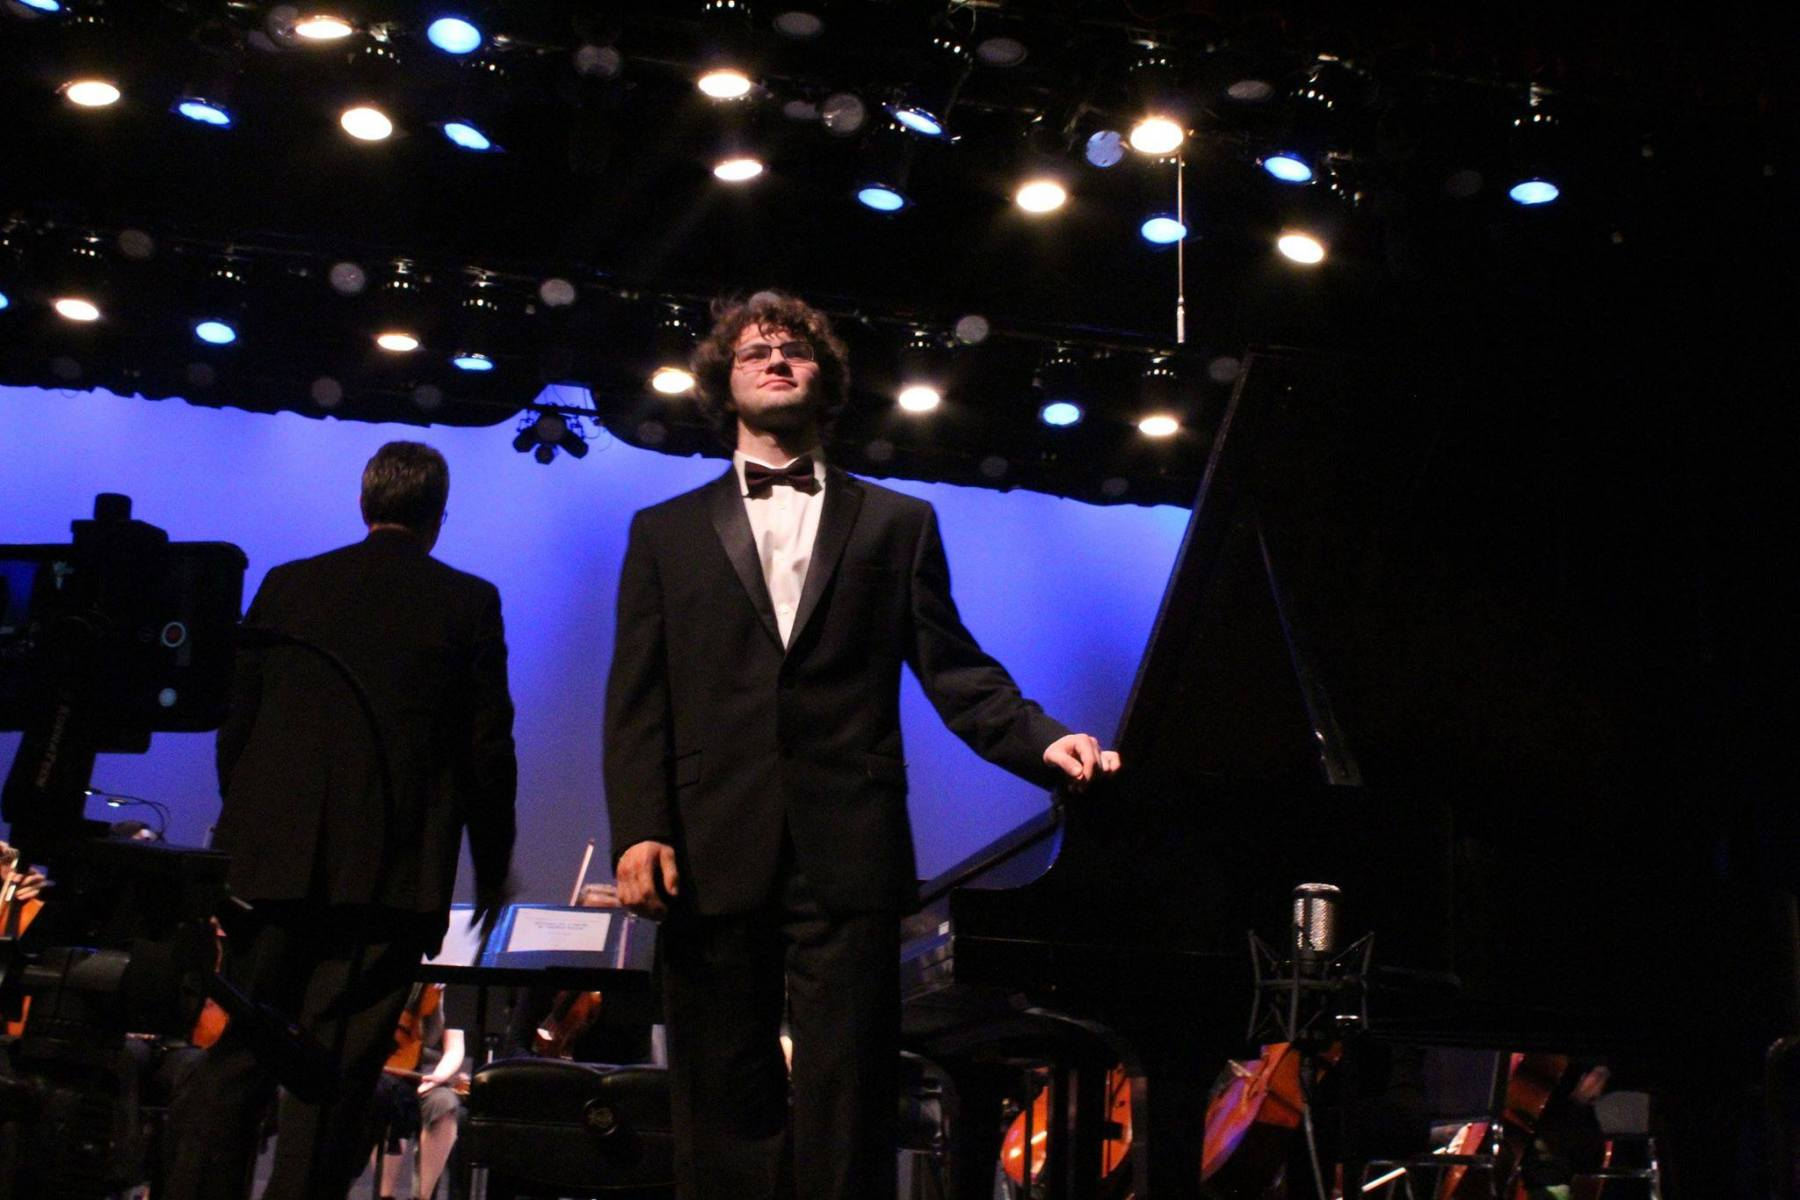 Receiving Accolades after Mozart K466 Solo Performance